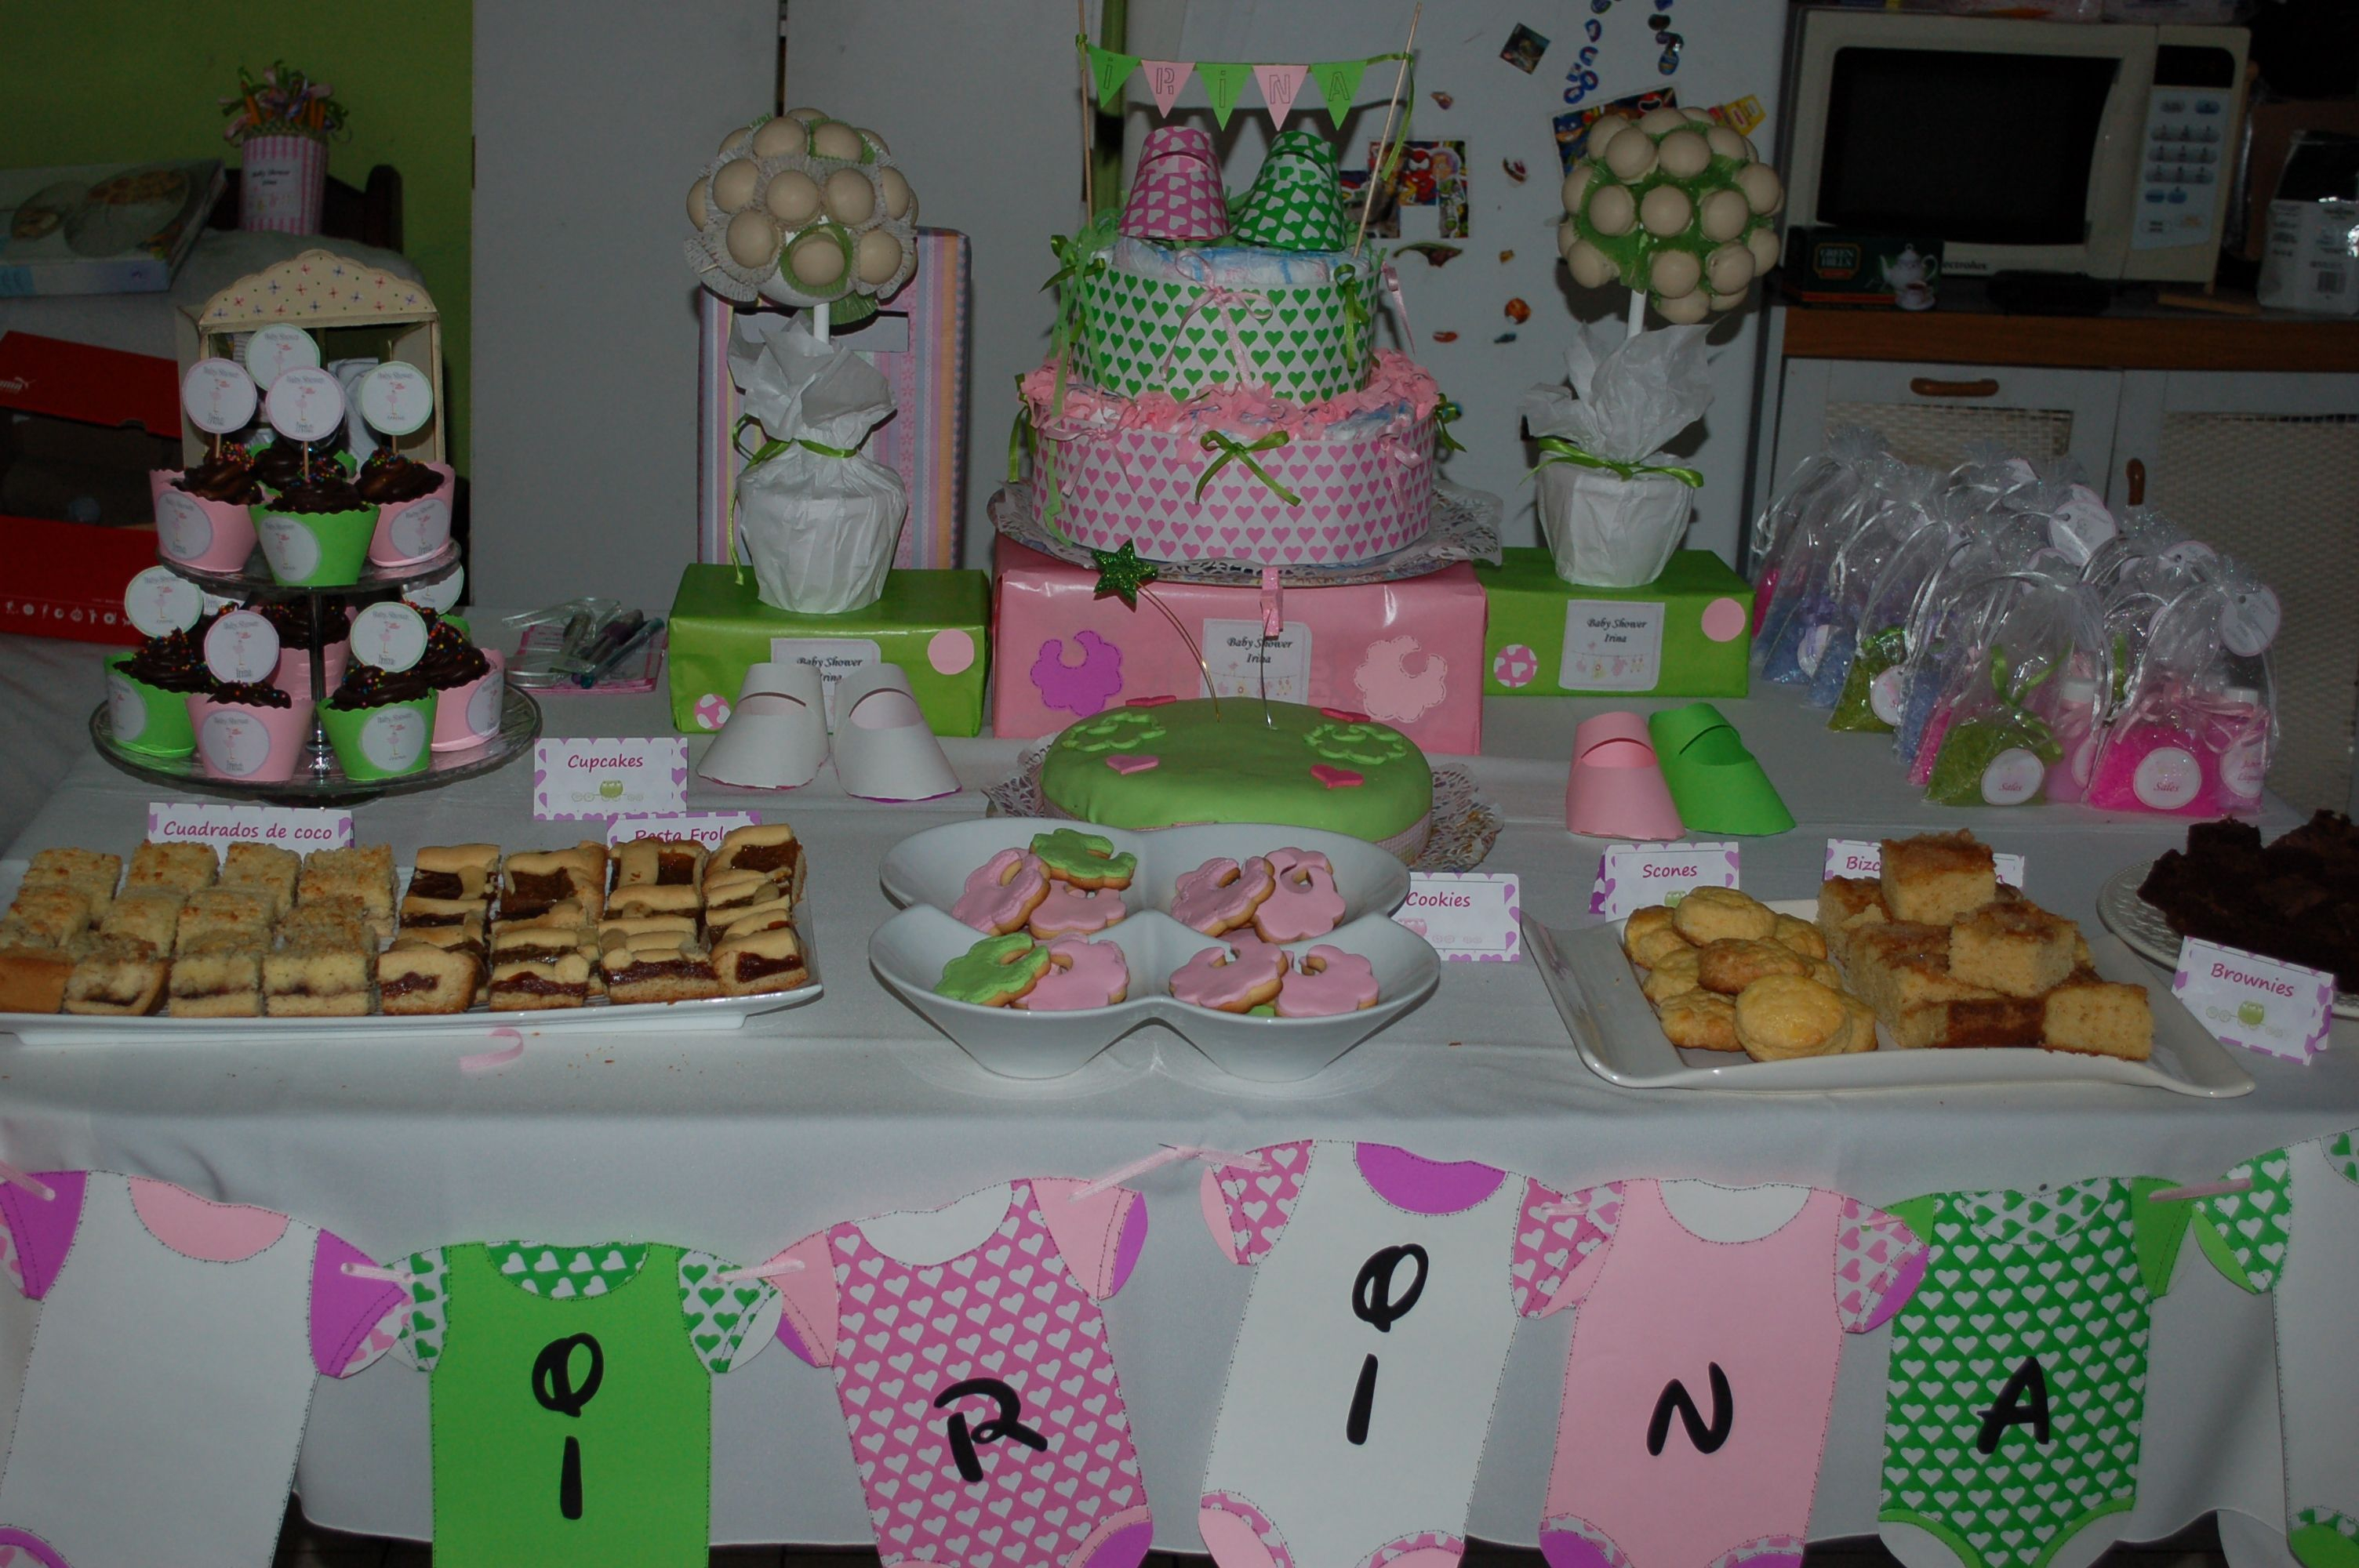 Amazing Mesa Dulce Para Baby Shower De Irina | Baby Shower | Pinterest within New Mesa De Dulces Para Baby Shower